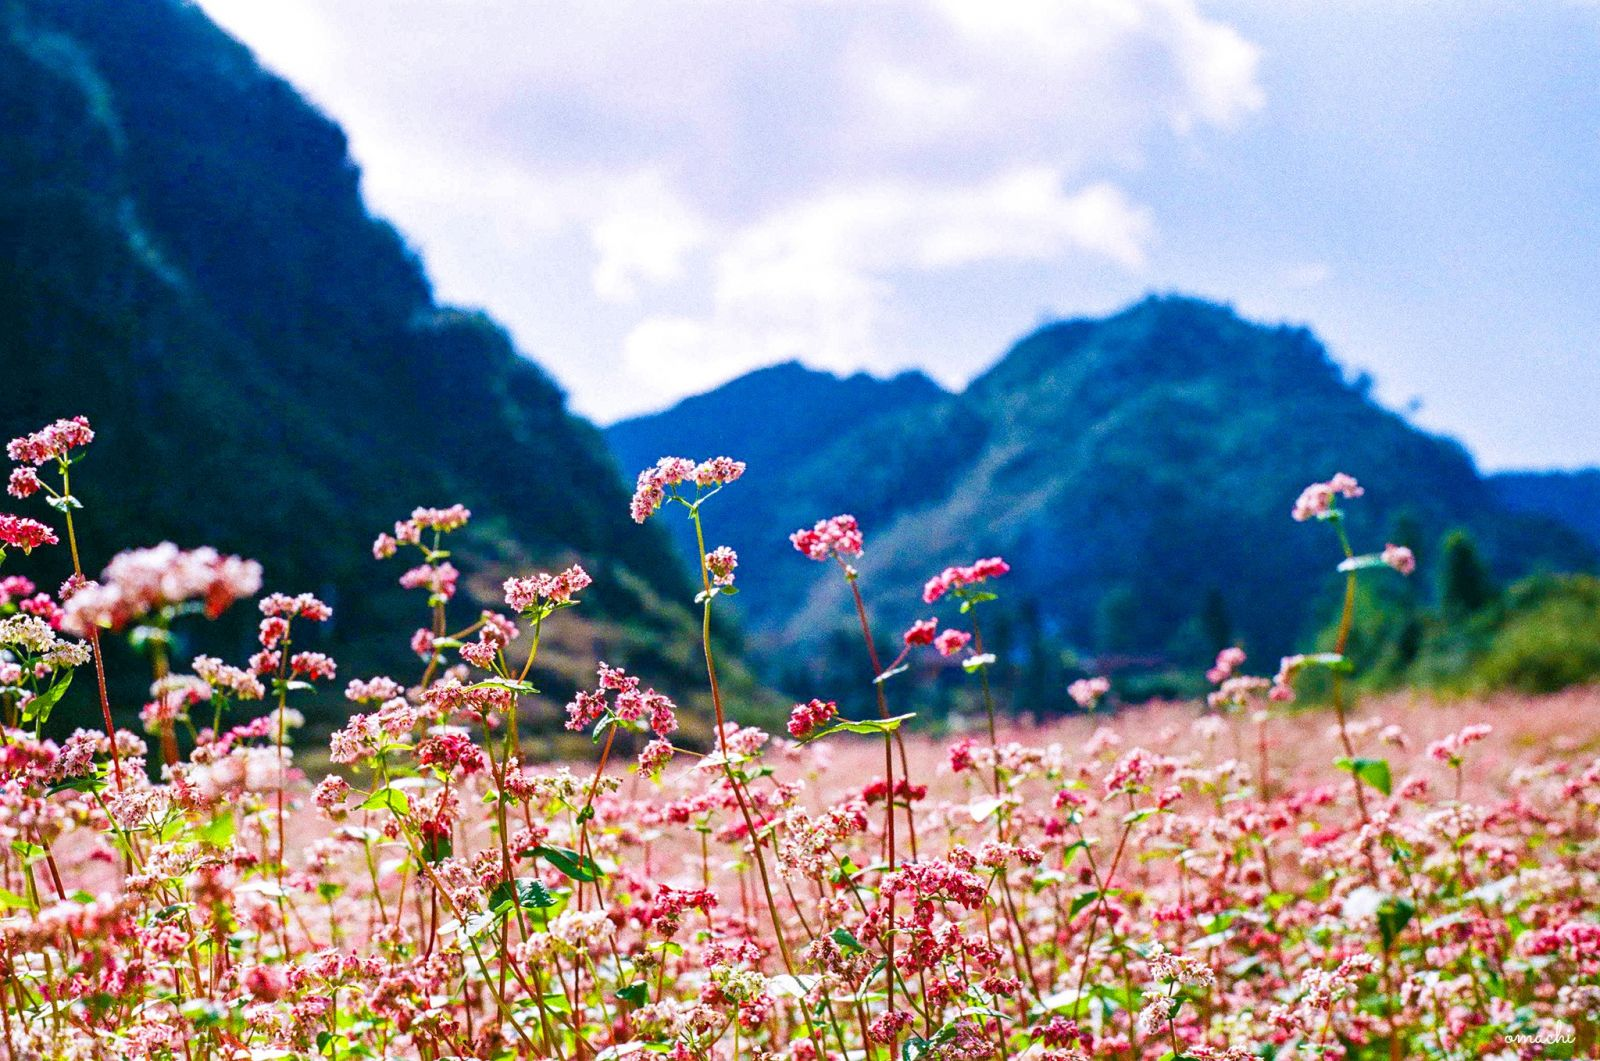 The buckwheat flowers bloom brilliantly beside the rocky mountain